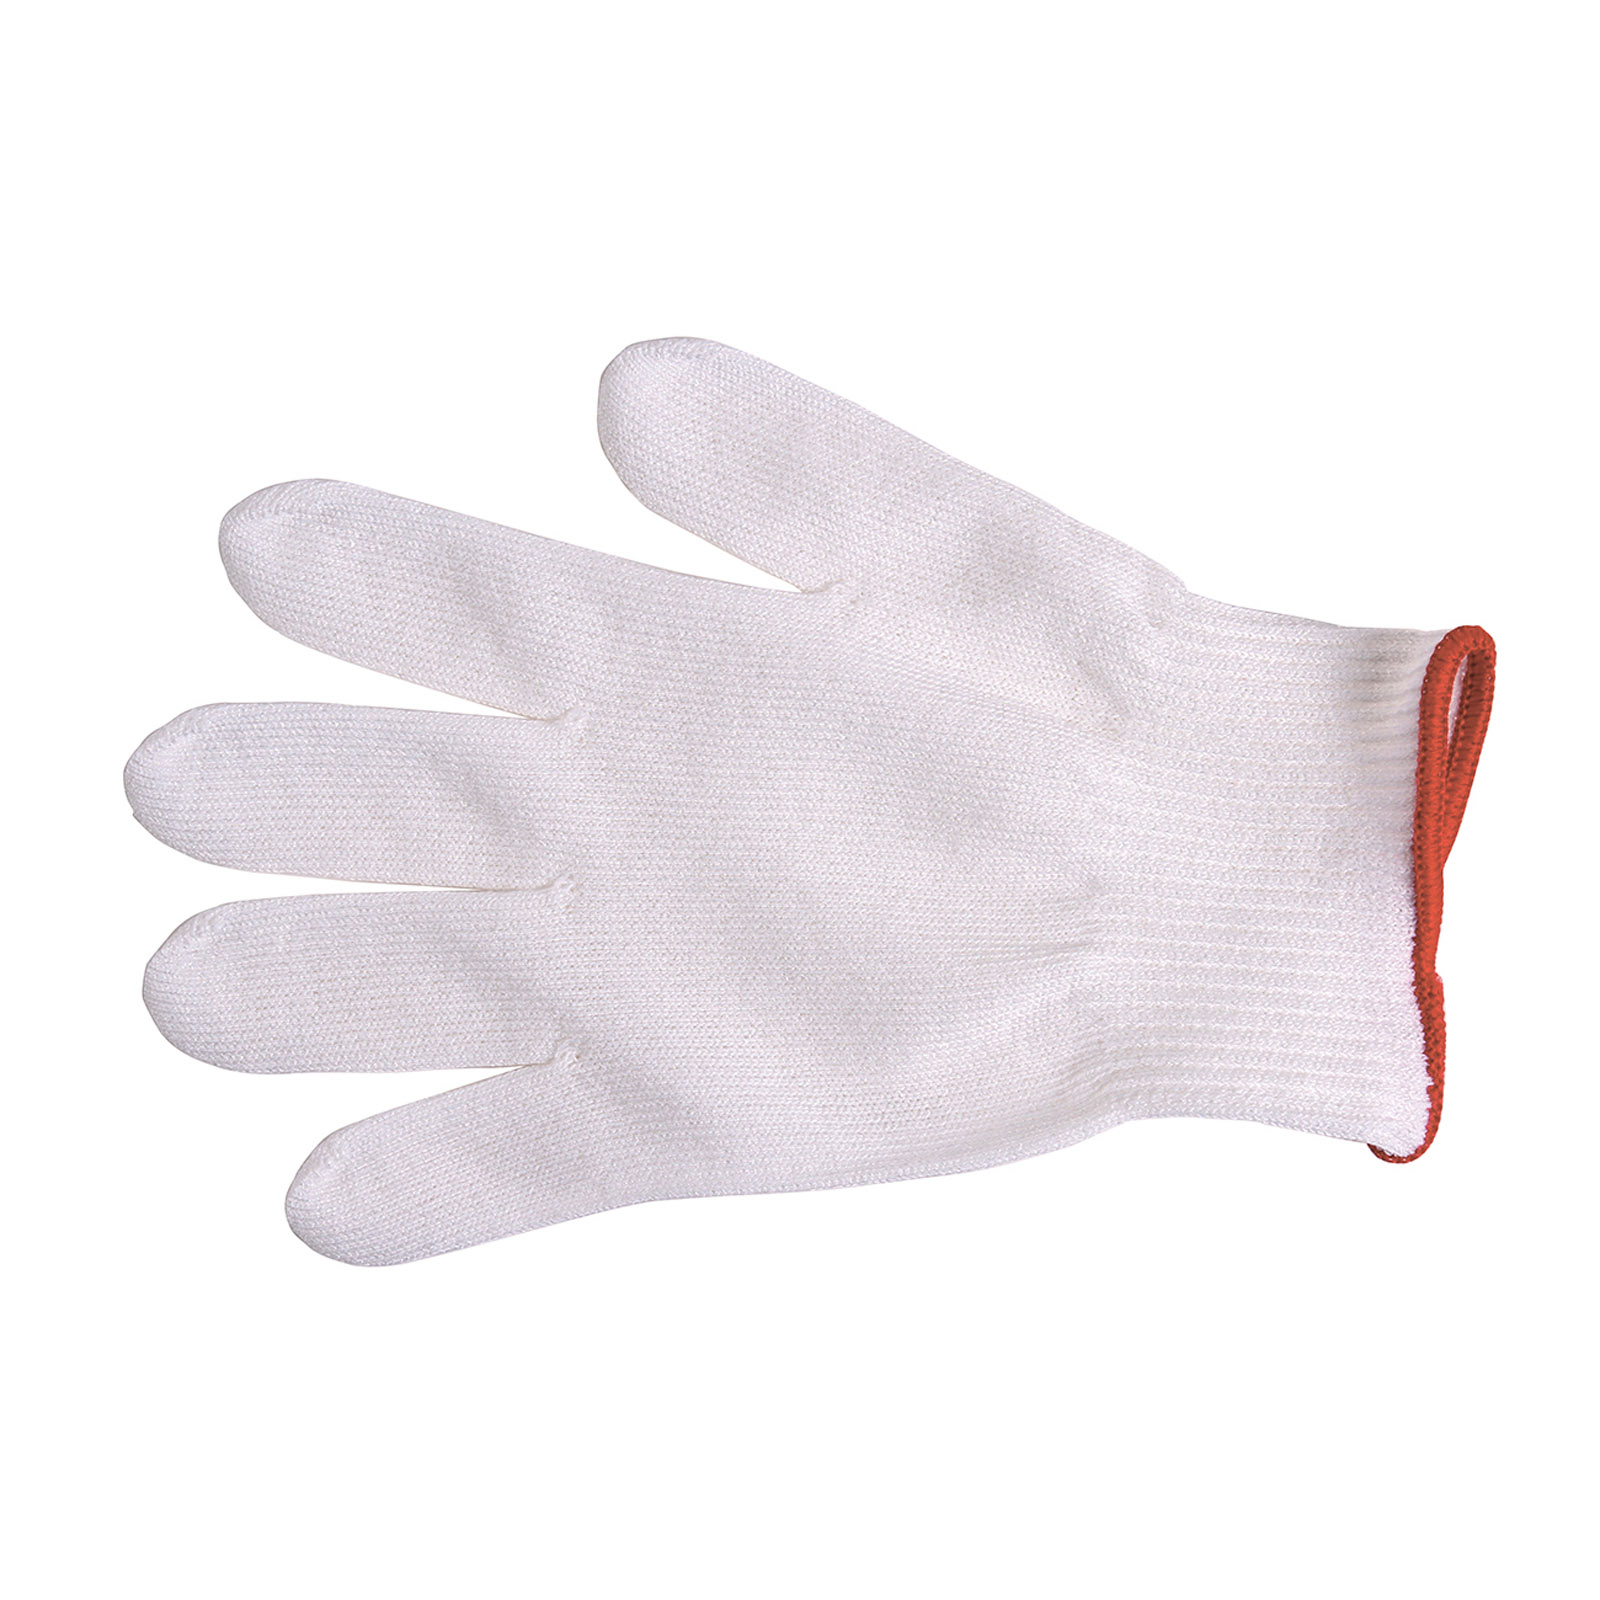 Mercer Culinary M33411S glove, cut resistant